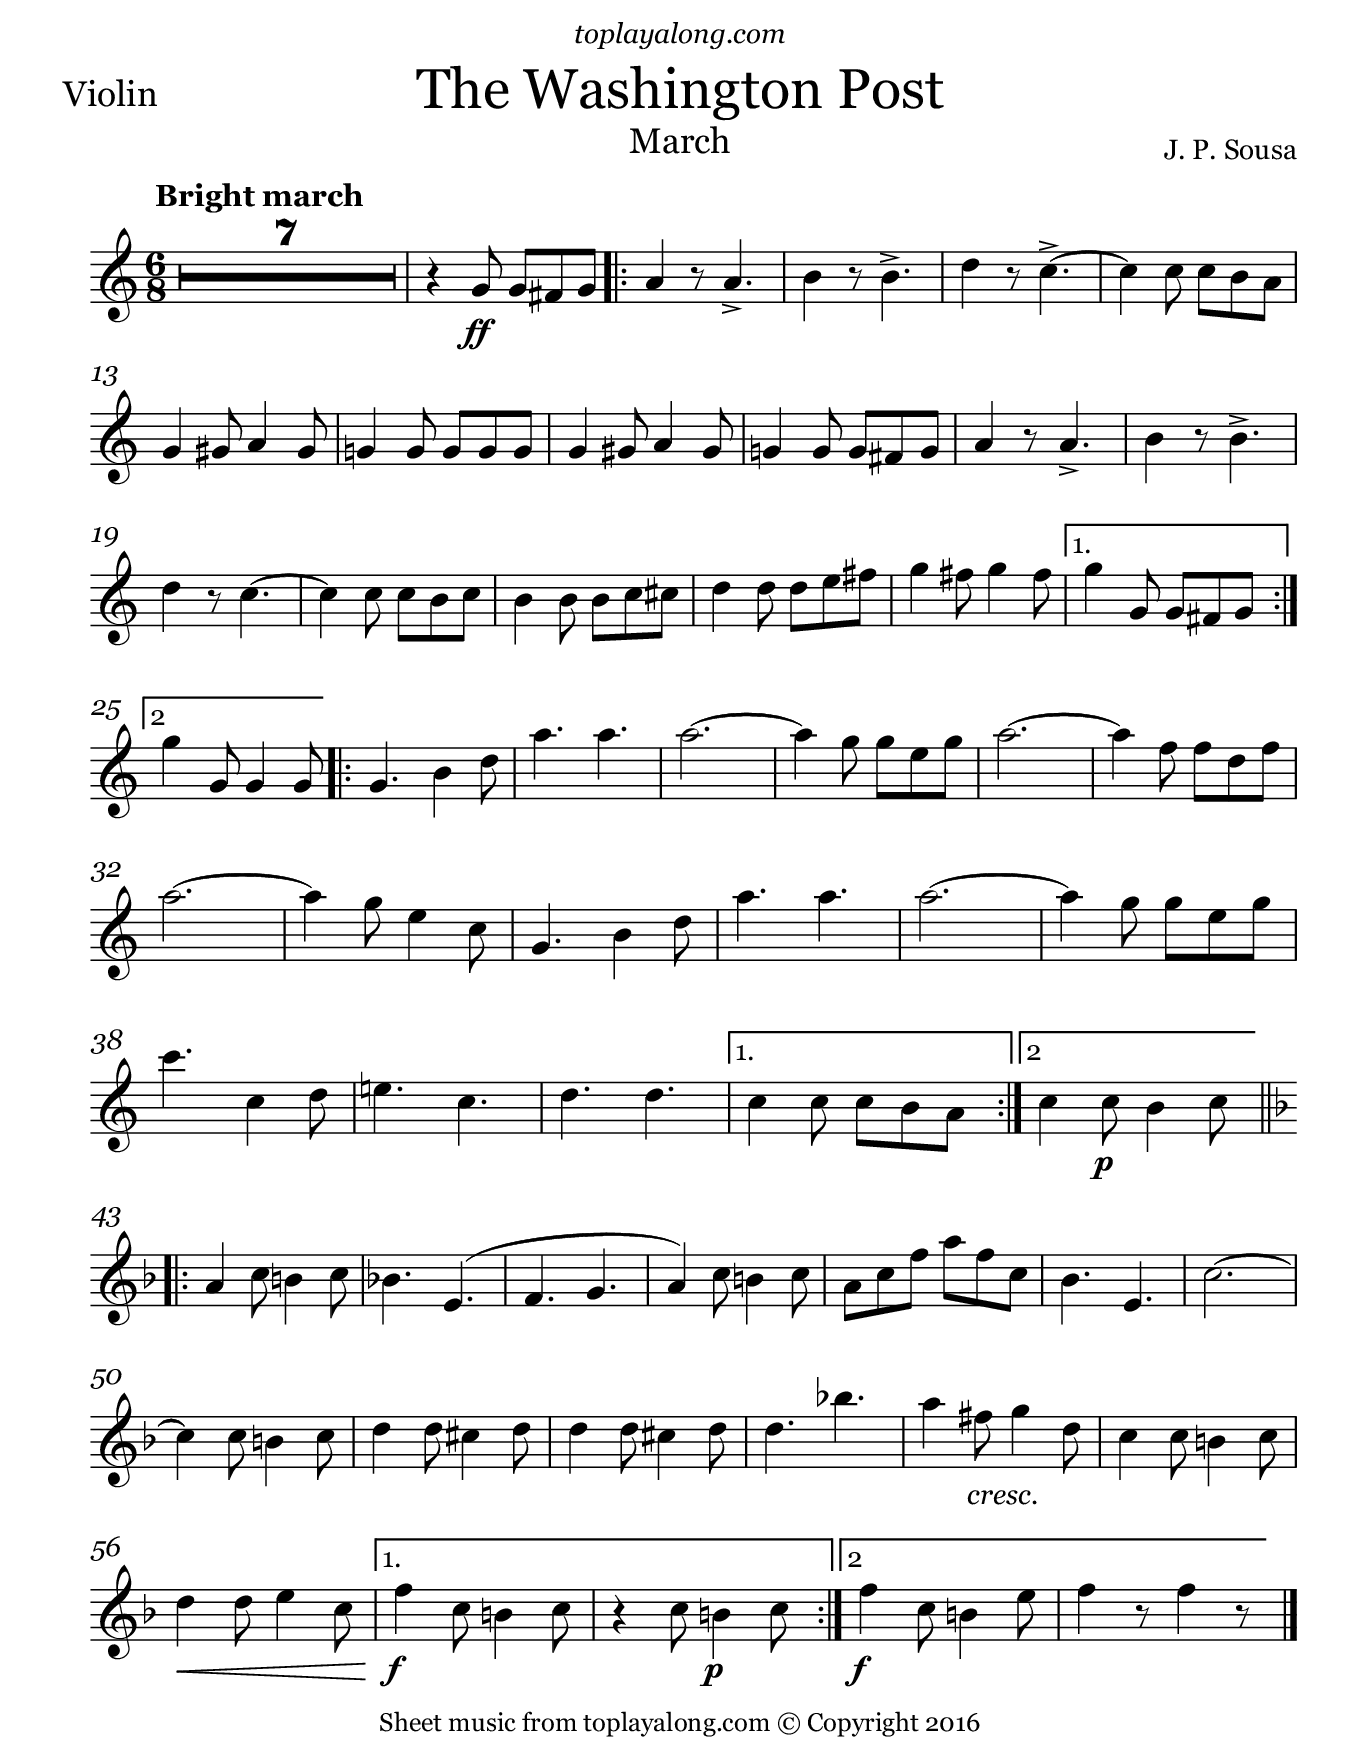 The Washington Post March by Sousa. Sheet music for Violin, page 1.